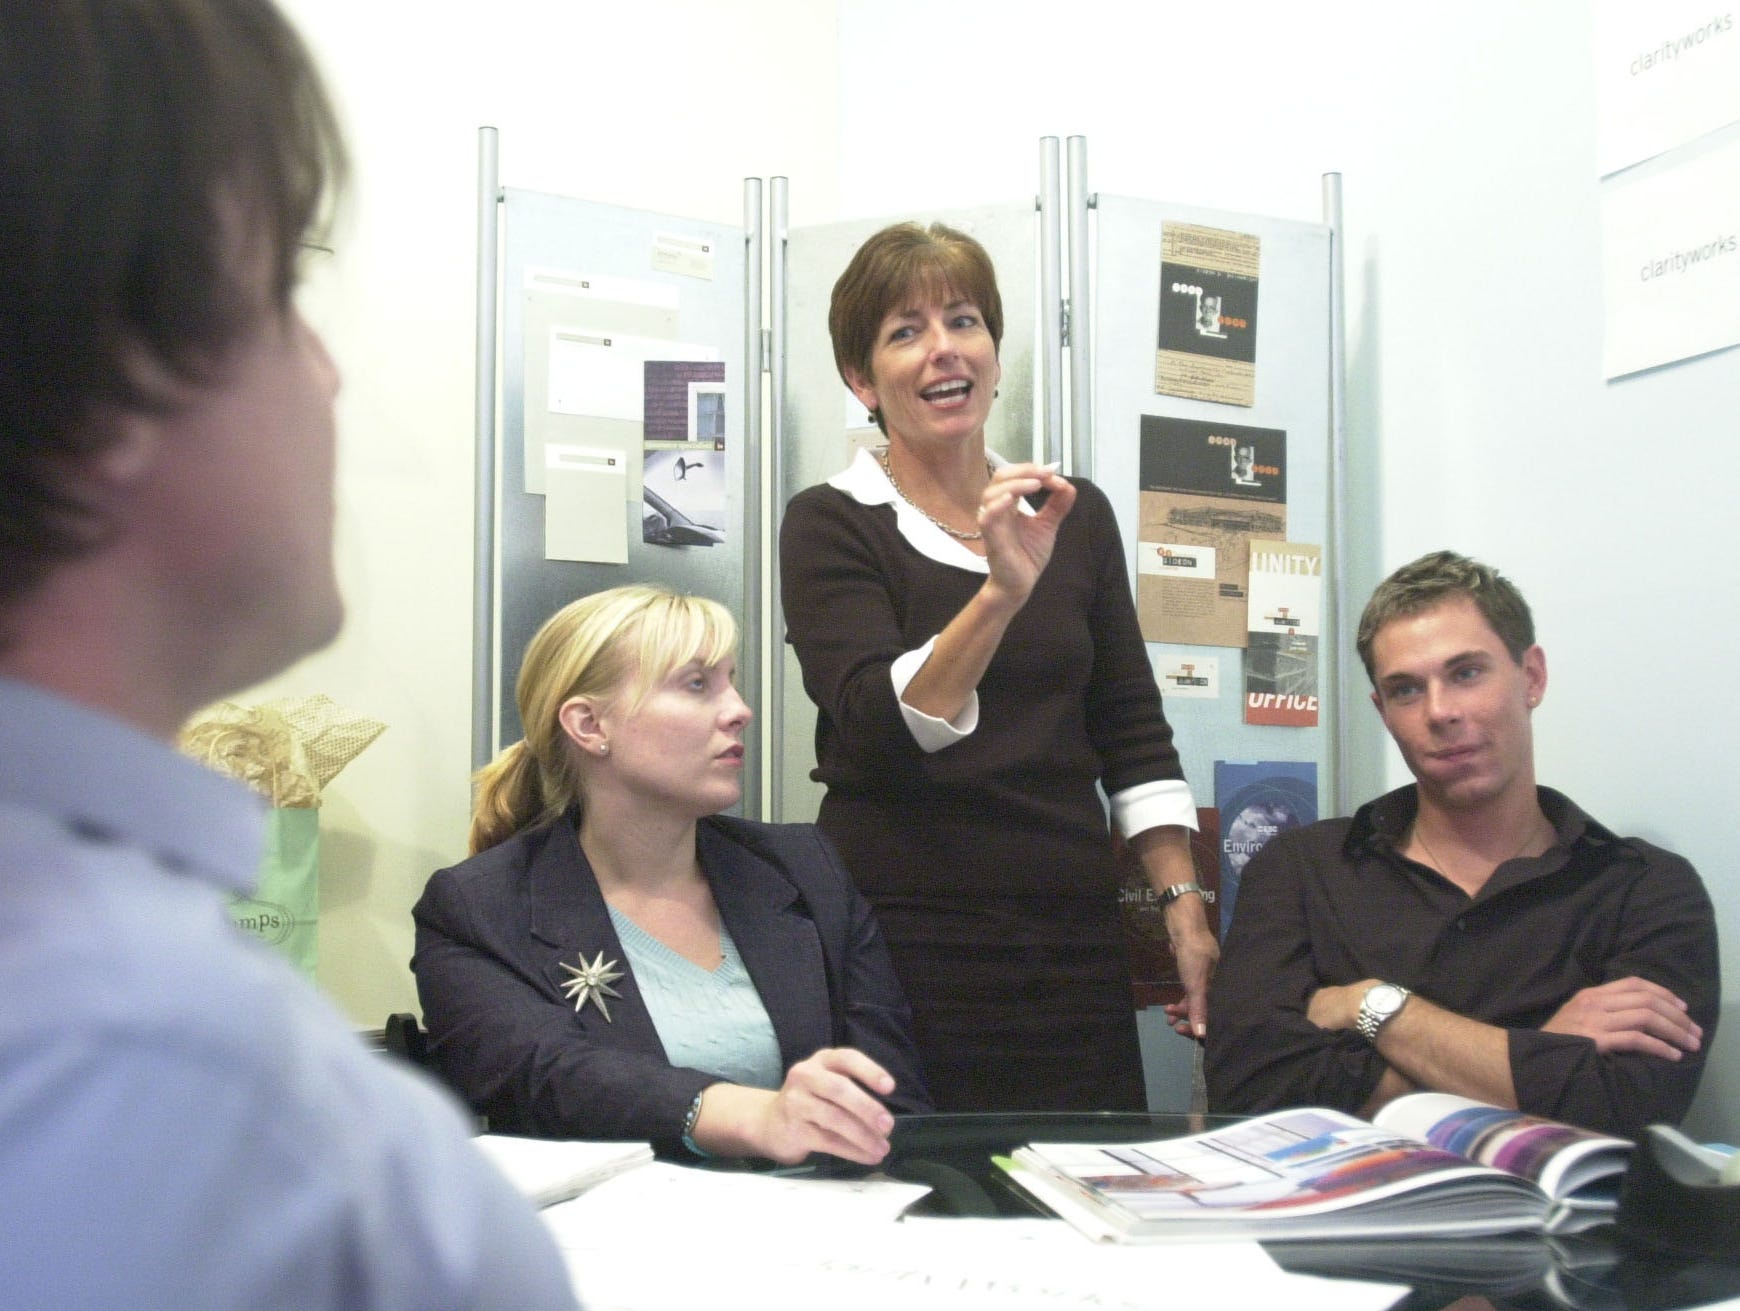 The staff at ClarityWorks have discussions on the design of a new logo Thursday at their offices in the Old City. From left are Arron Russell, Jude Waters, Carol Evans, and Josiah Morgan in 2003.